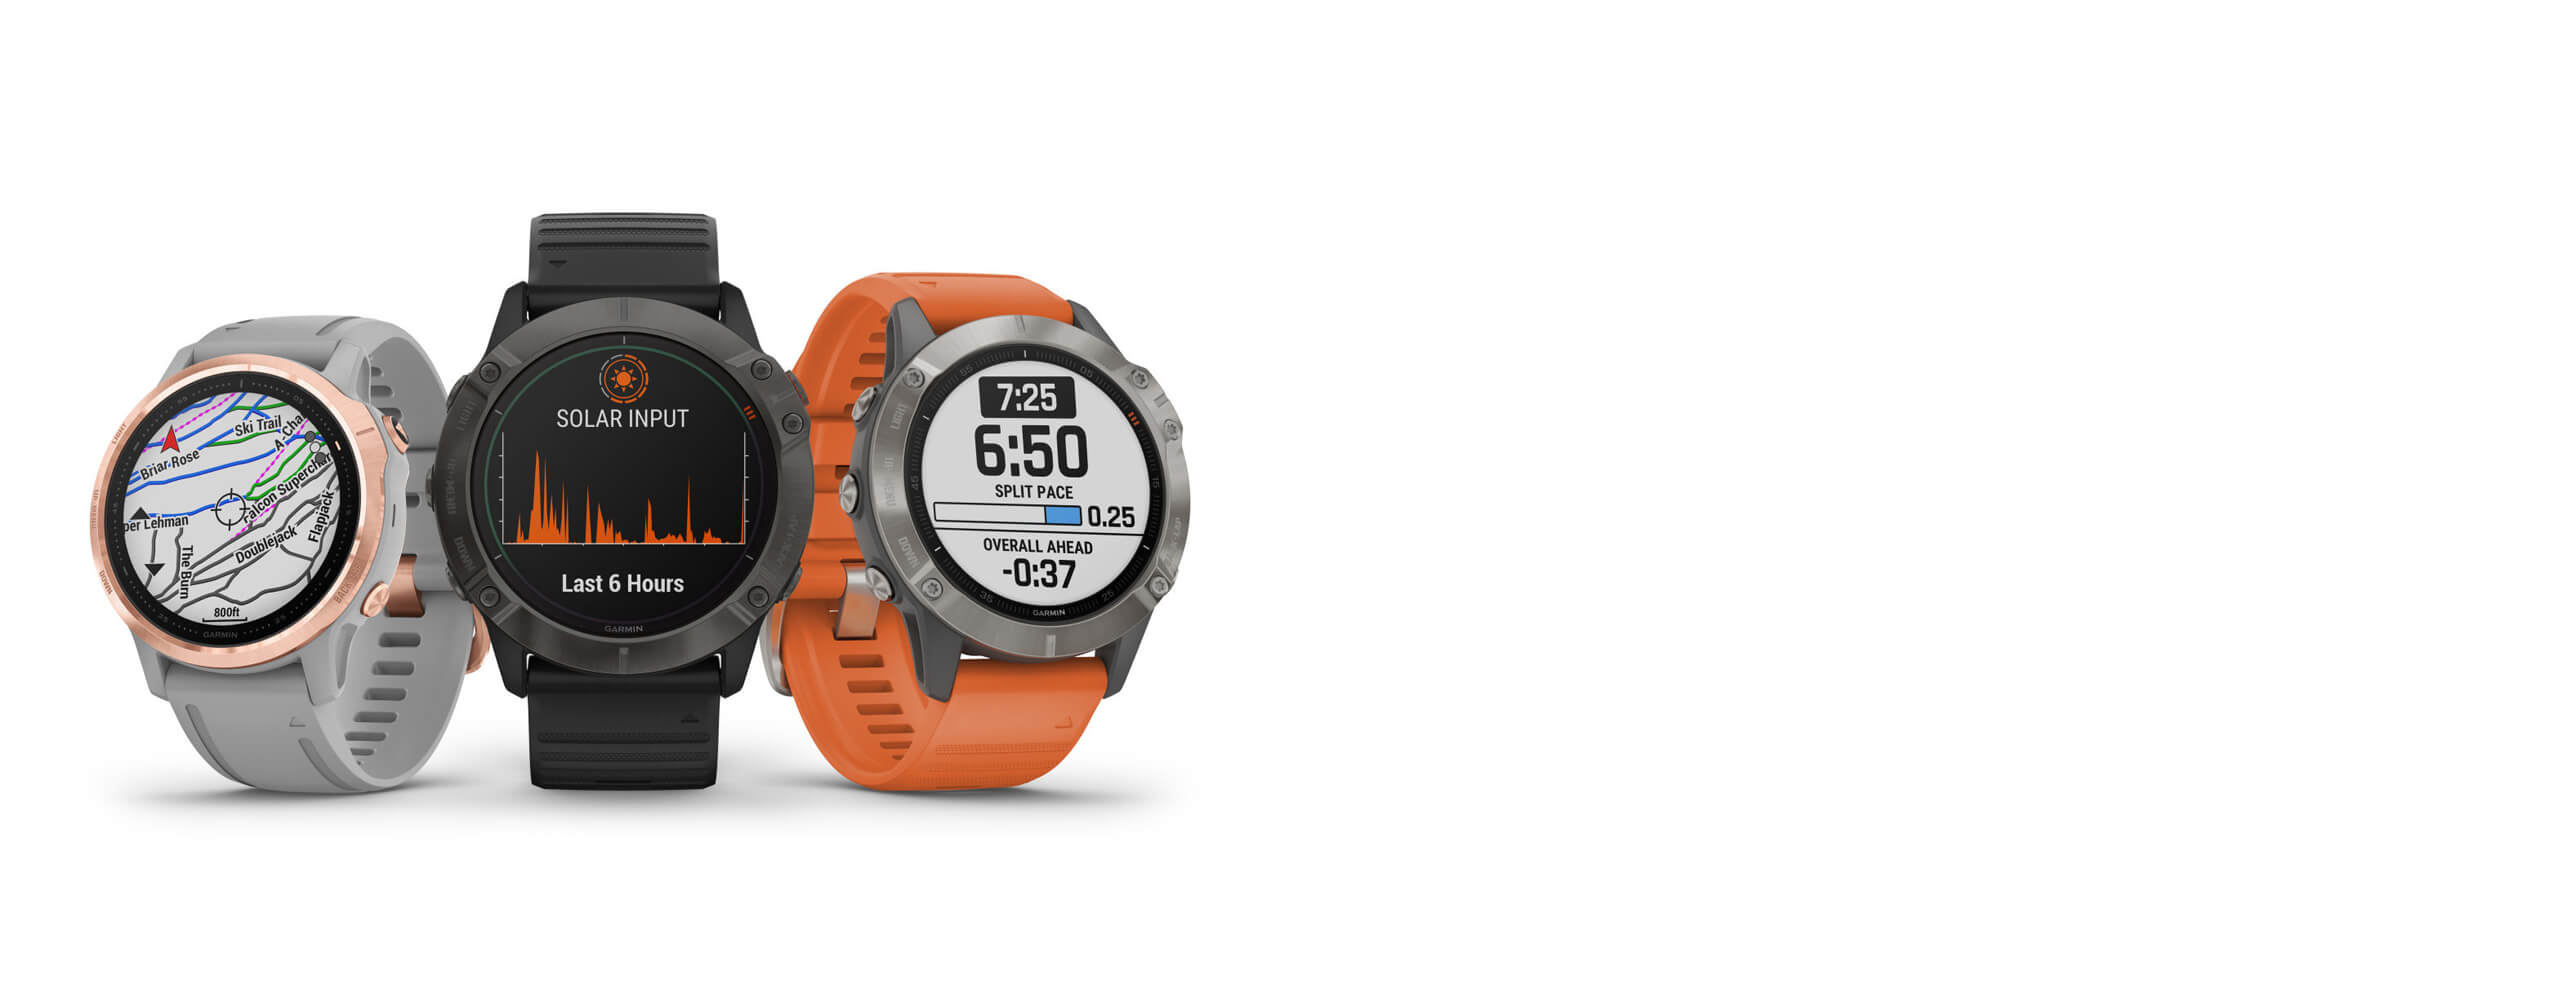 Garmin-Fenix-6-Slideshow-01